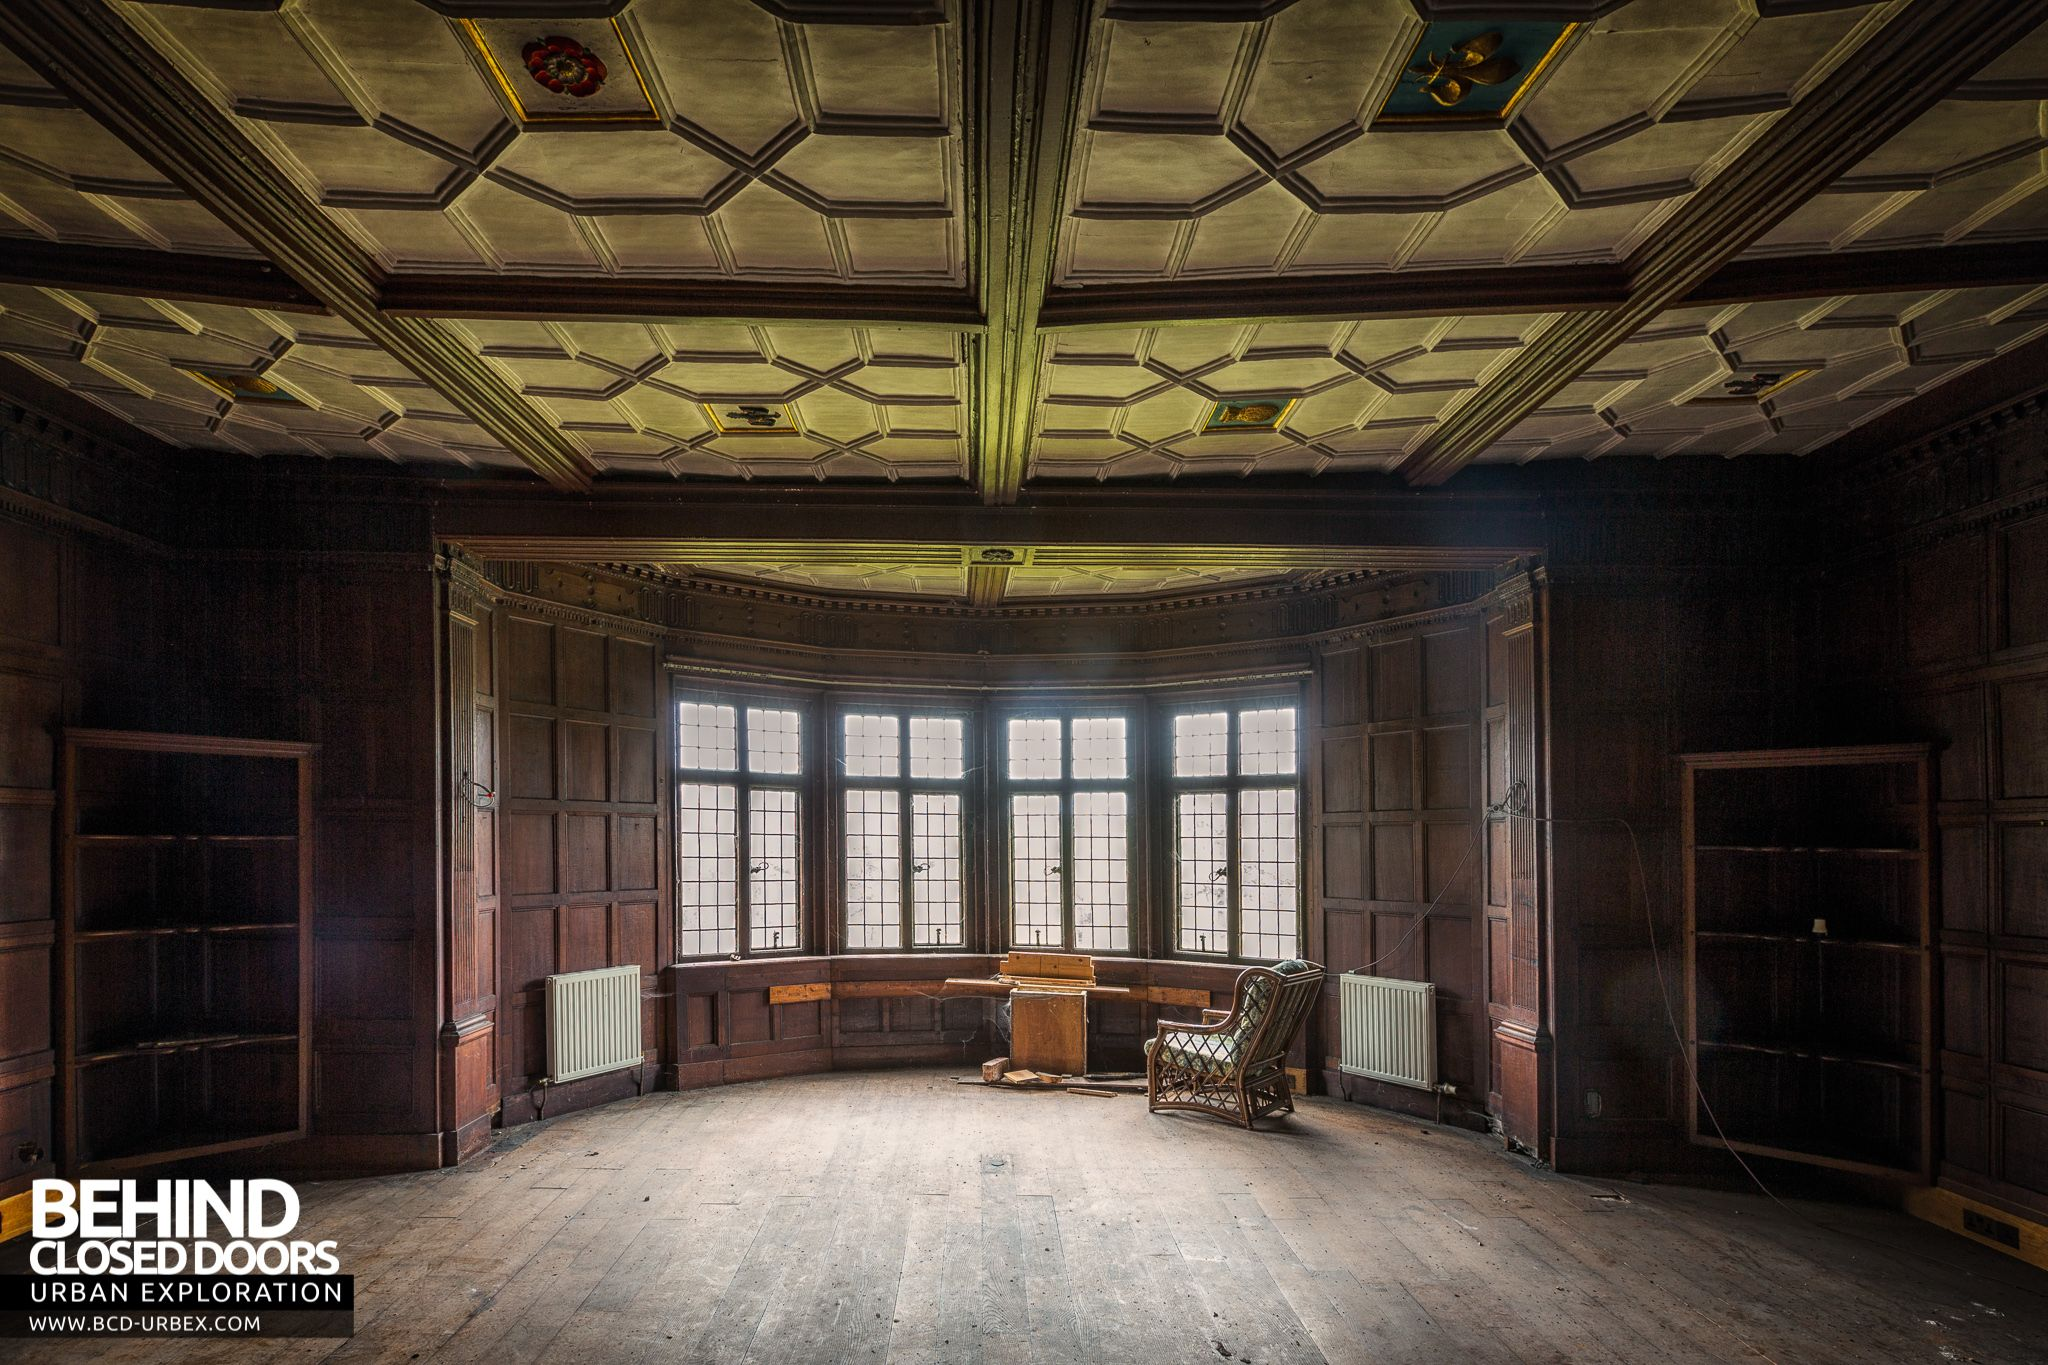 Pitchford Hall Room with amazing ceiling